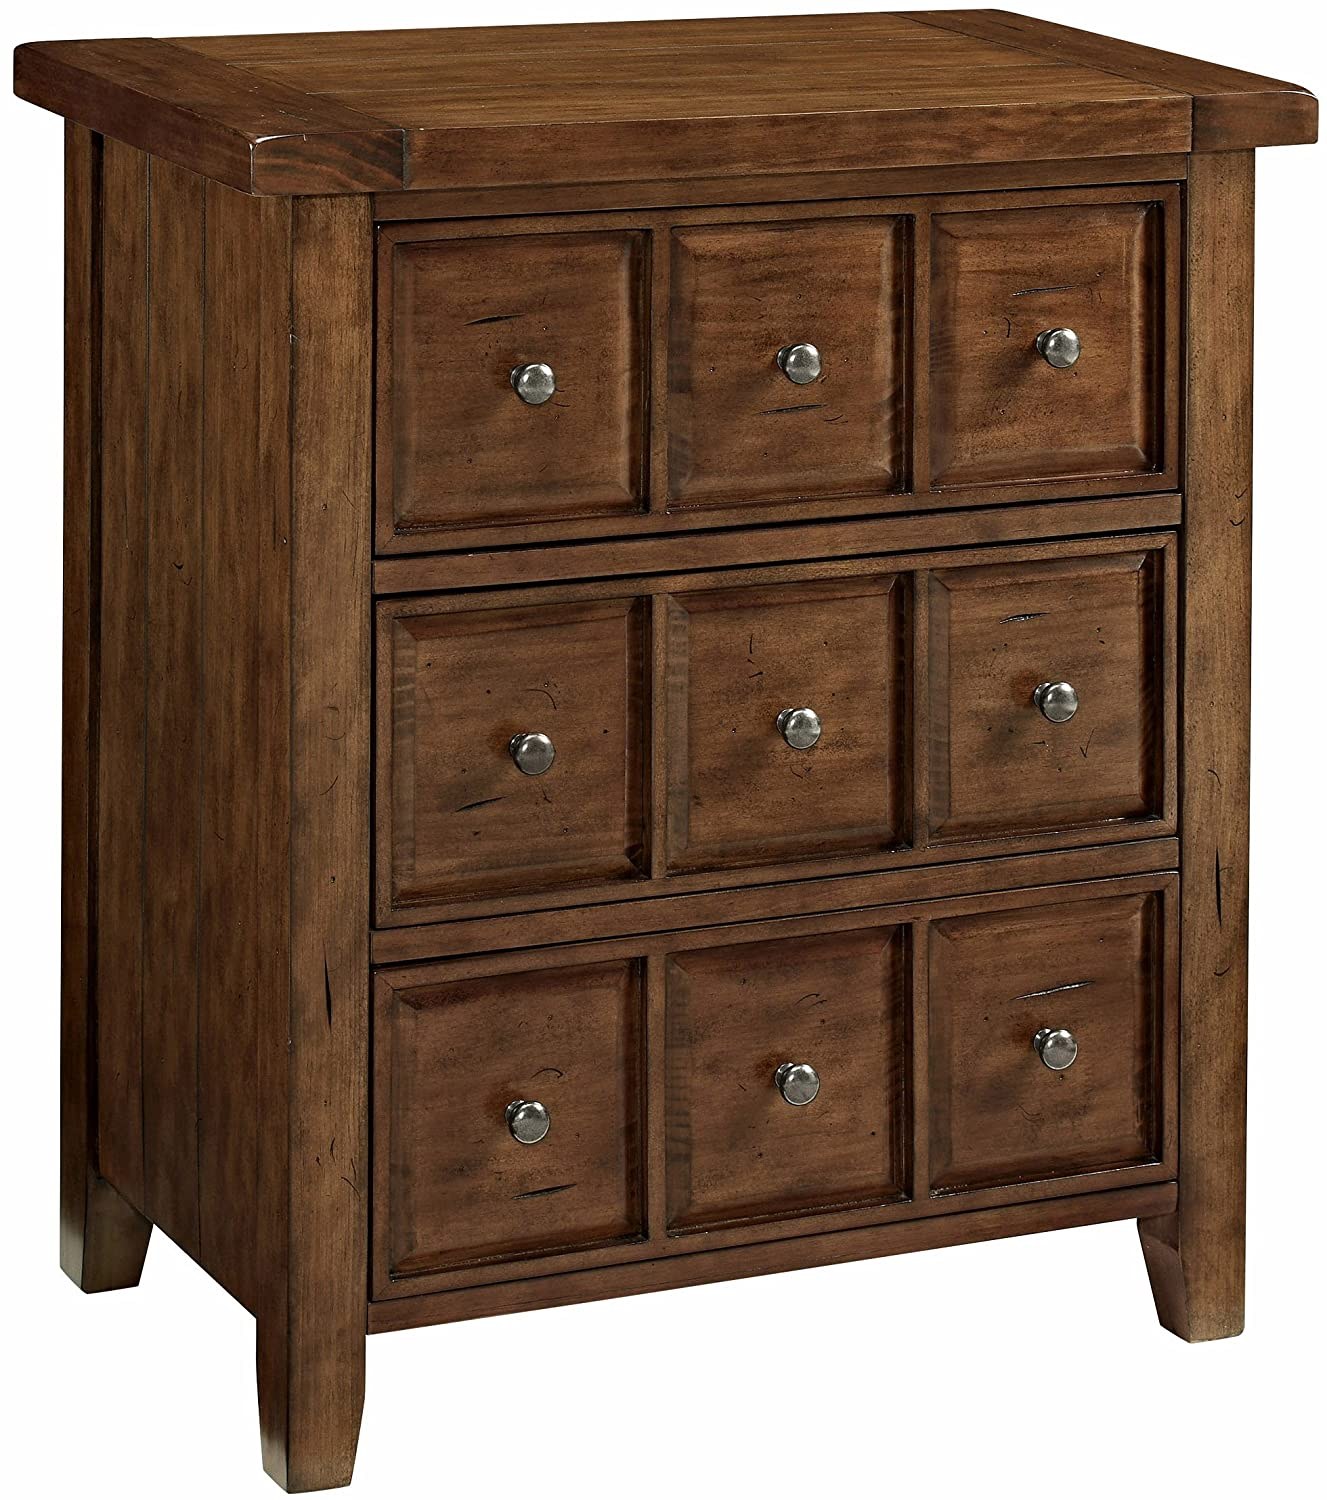 Crosley Furniture CF8001-MP Sienna Apothecary-Style Accent Chest - Moroccan Pine